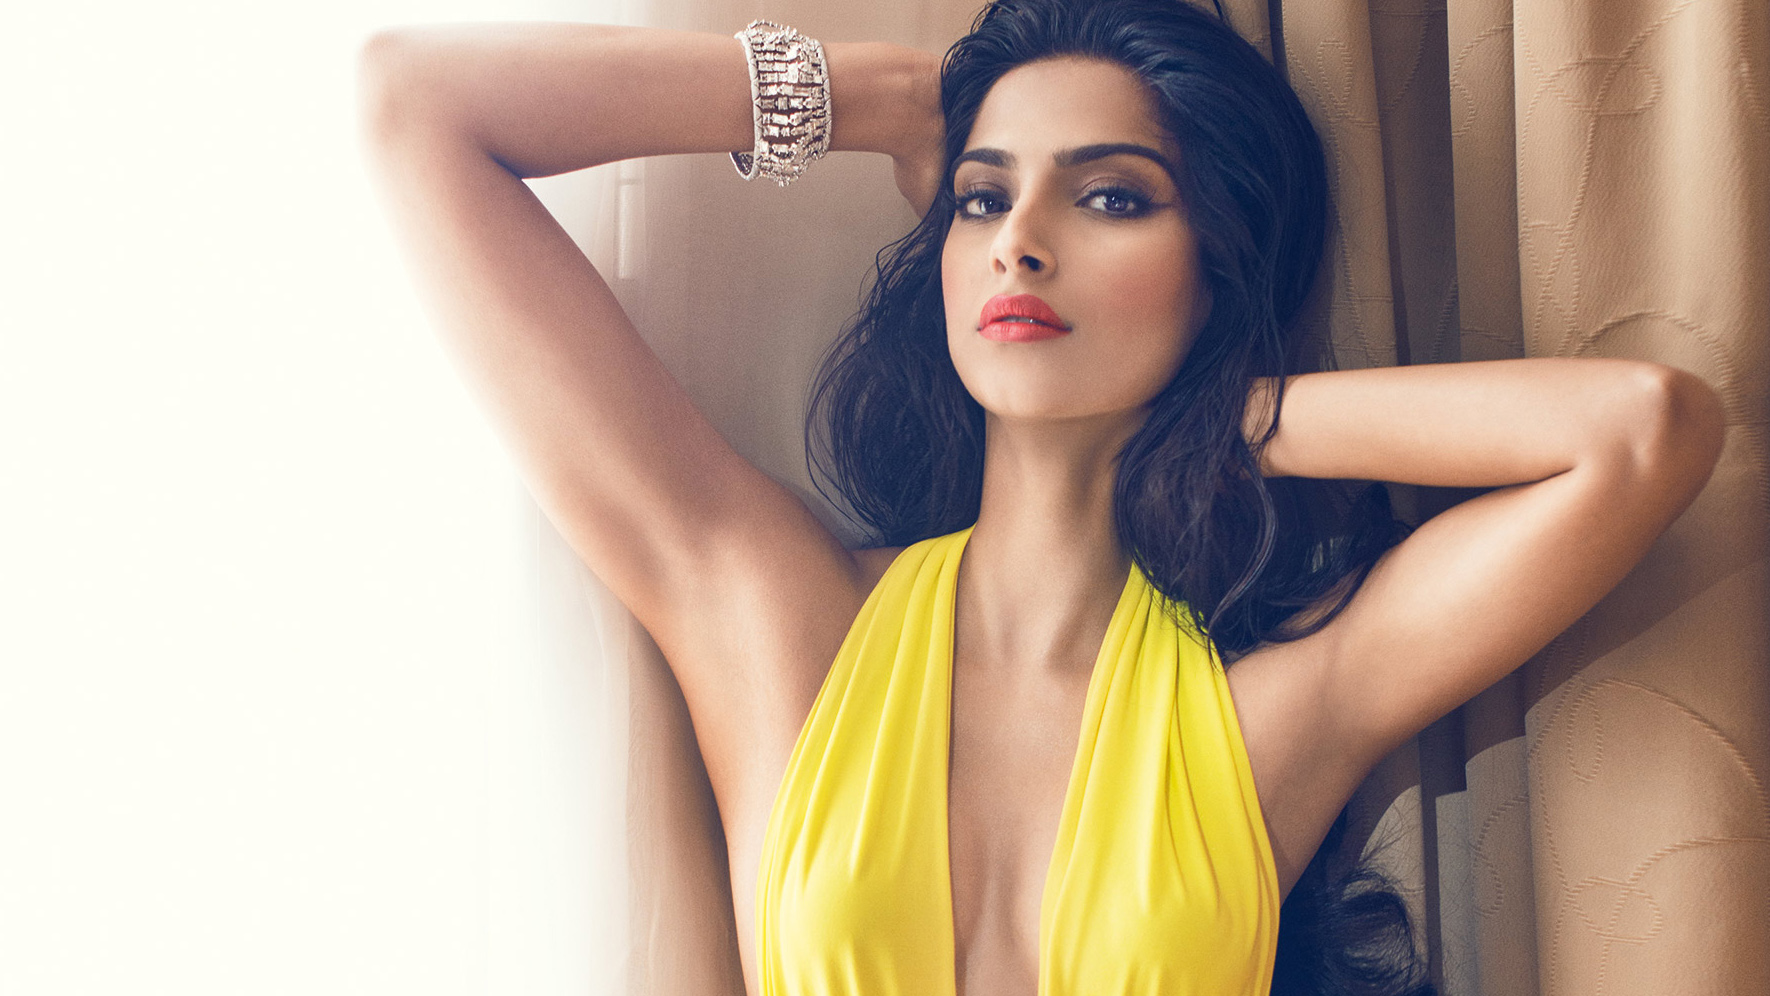 actress sonam kapoor hd wallpapers pics profile bio wiki | hd walls